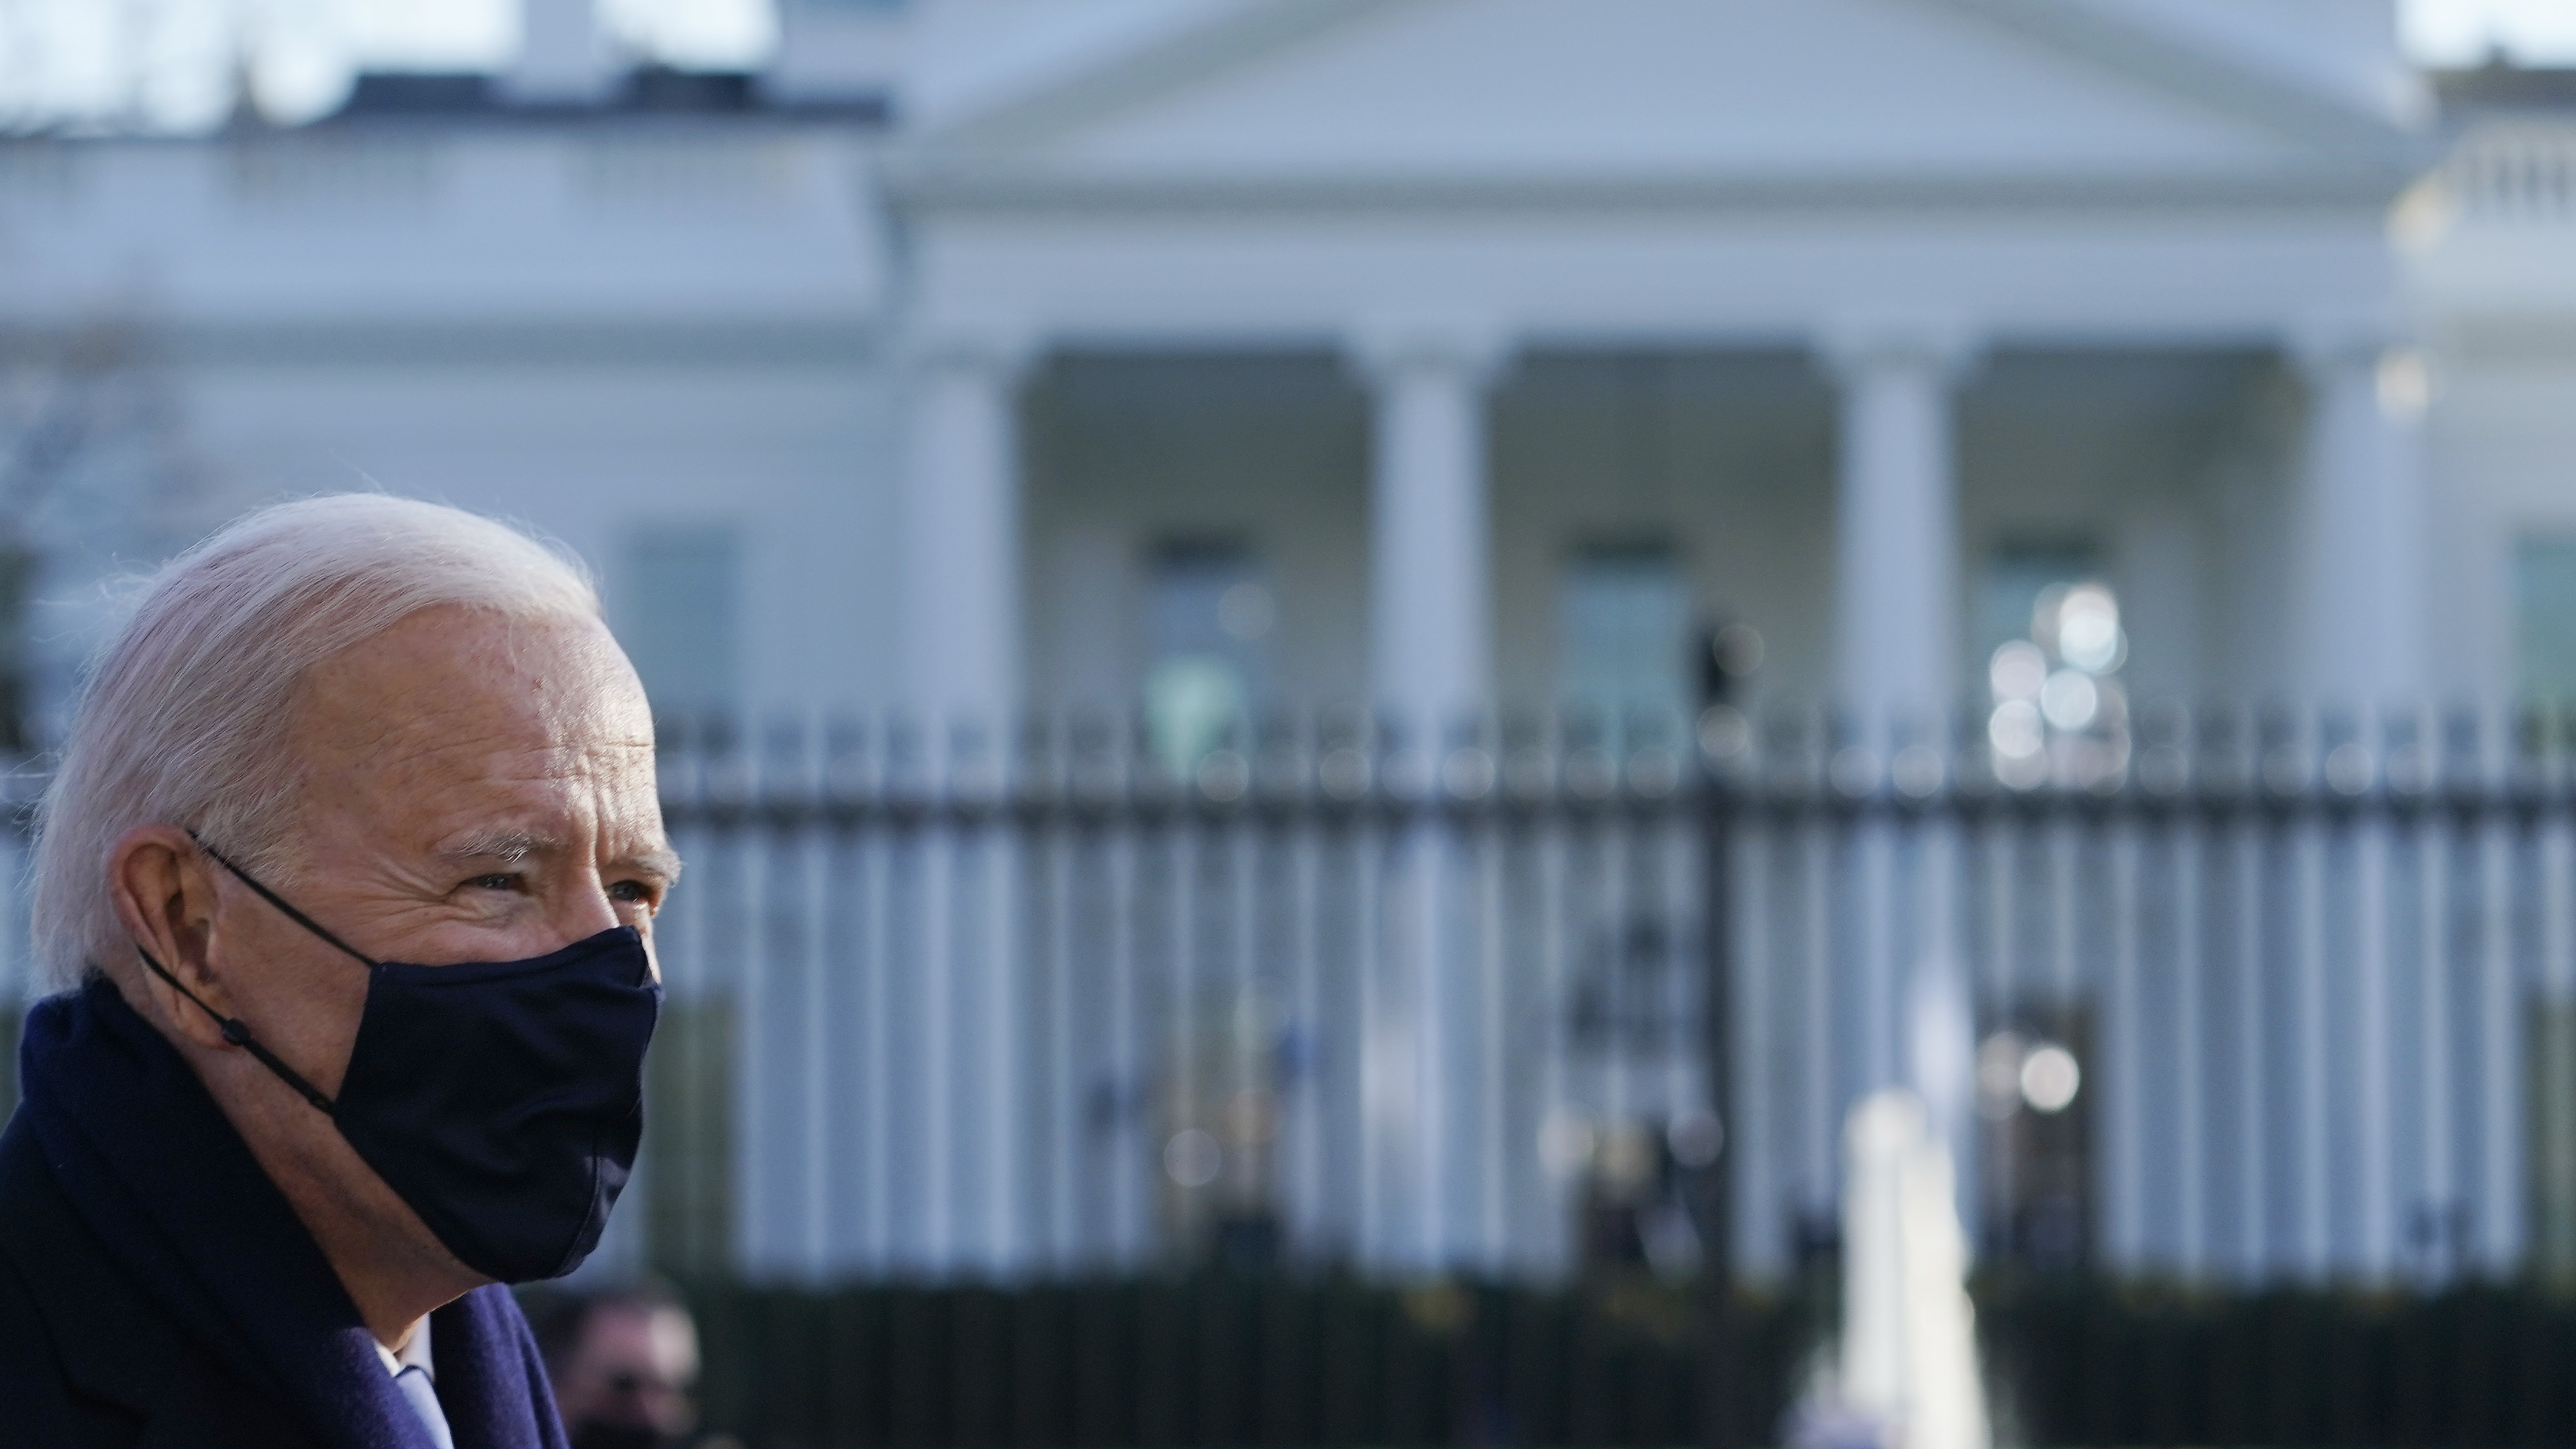 President Biden has signed a series of executive actions since Inauguration Day aimed at helping to address the COVID-19 crisis, his top priority in office.